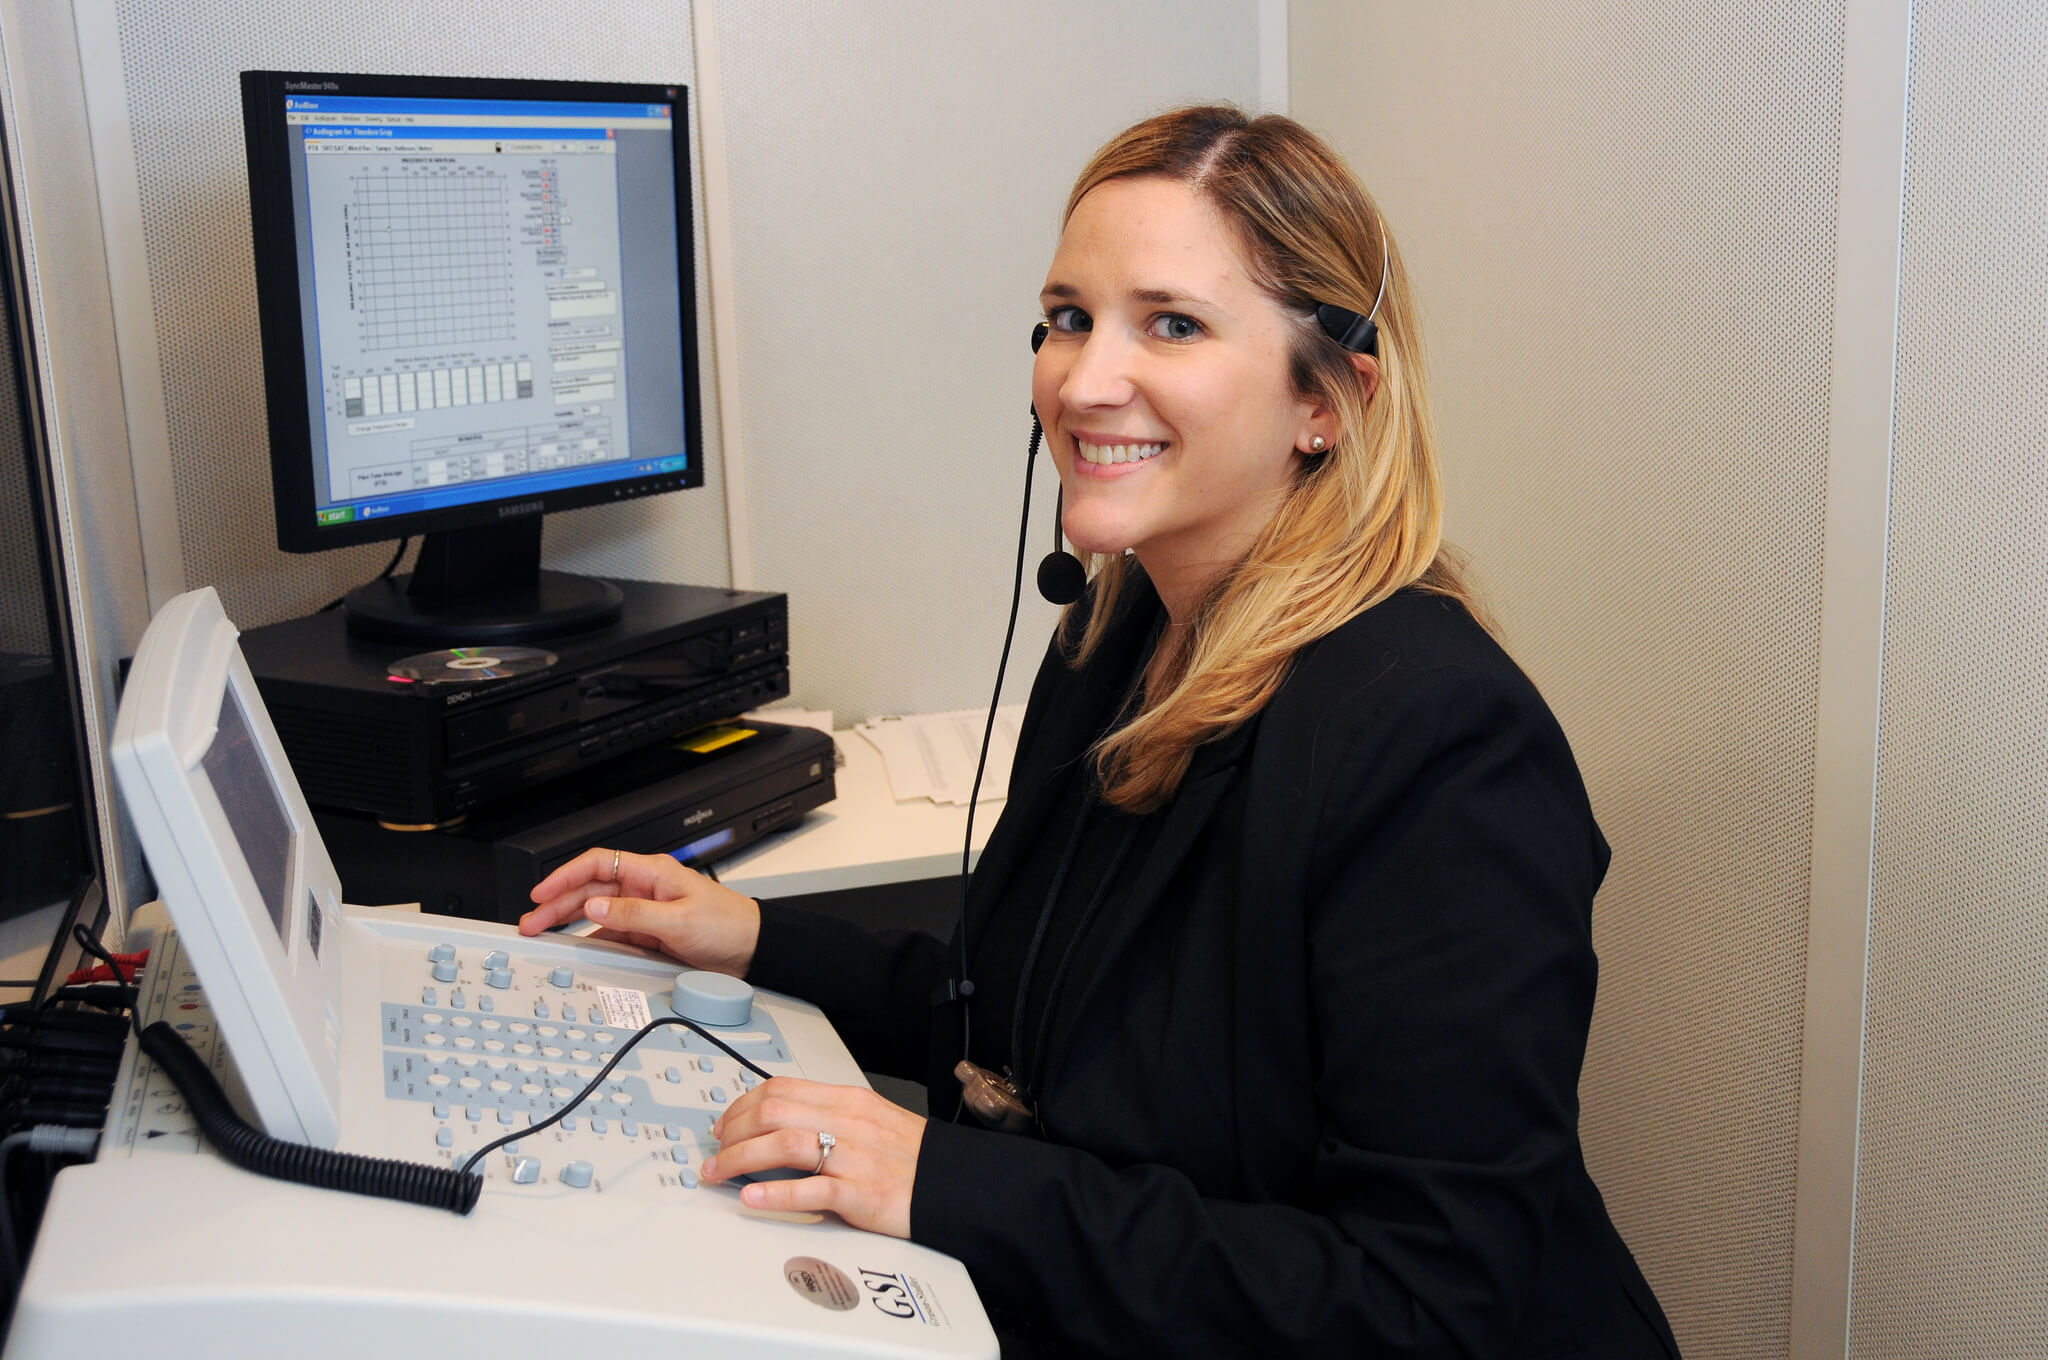 Aparatos Auditivos Audiology Services Sibley Memorial Hospital In